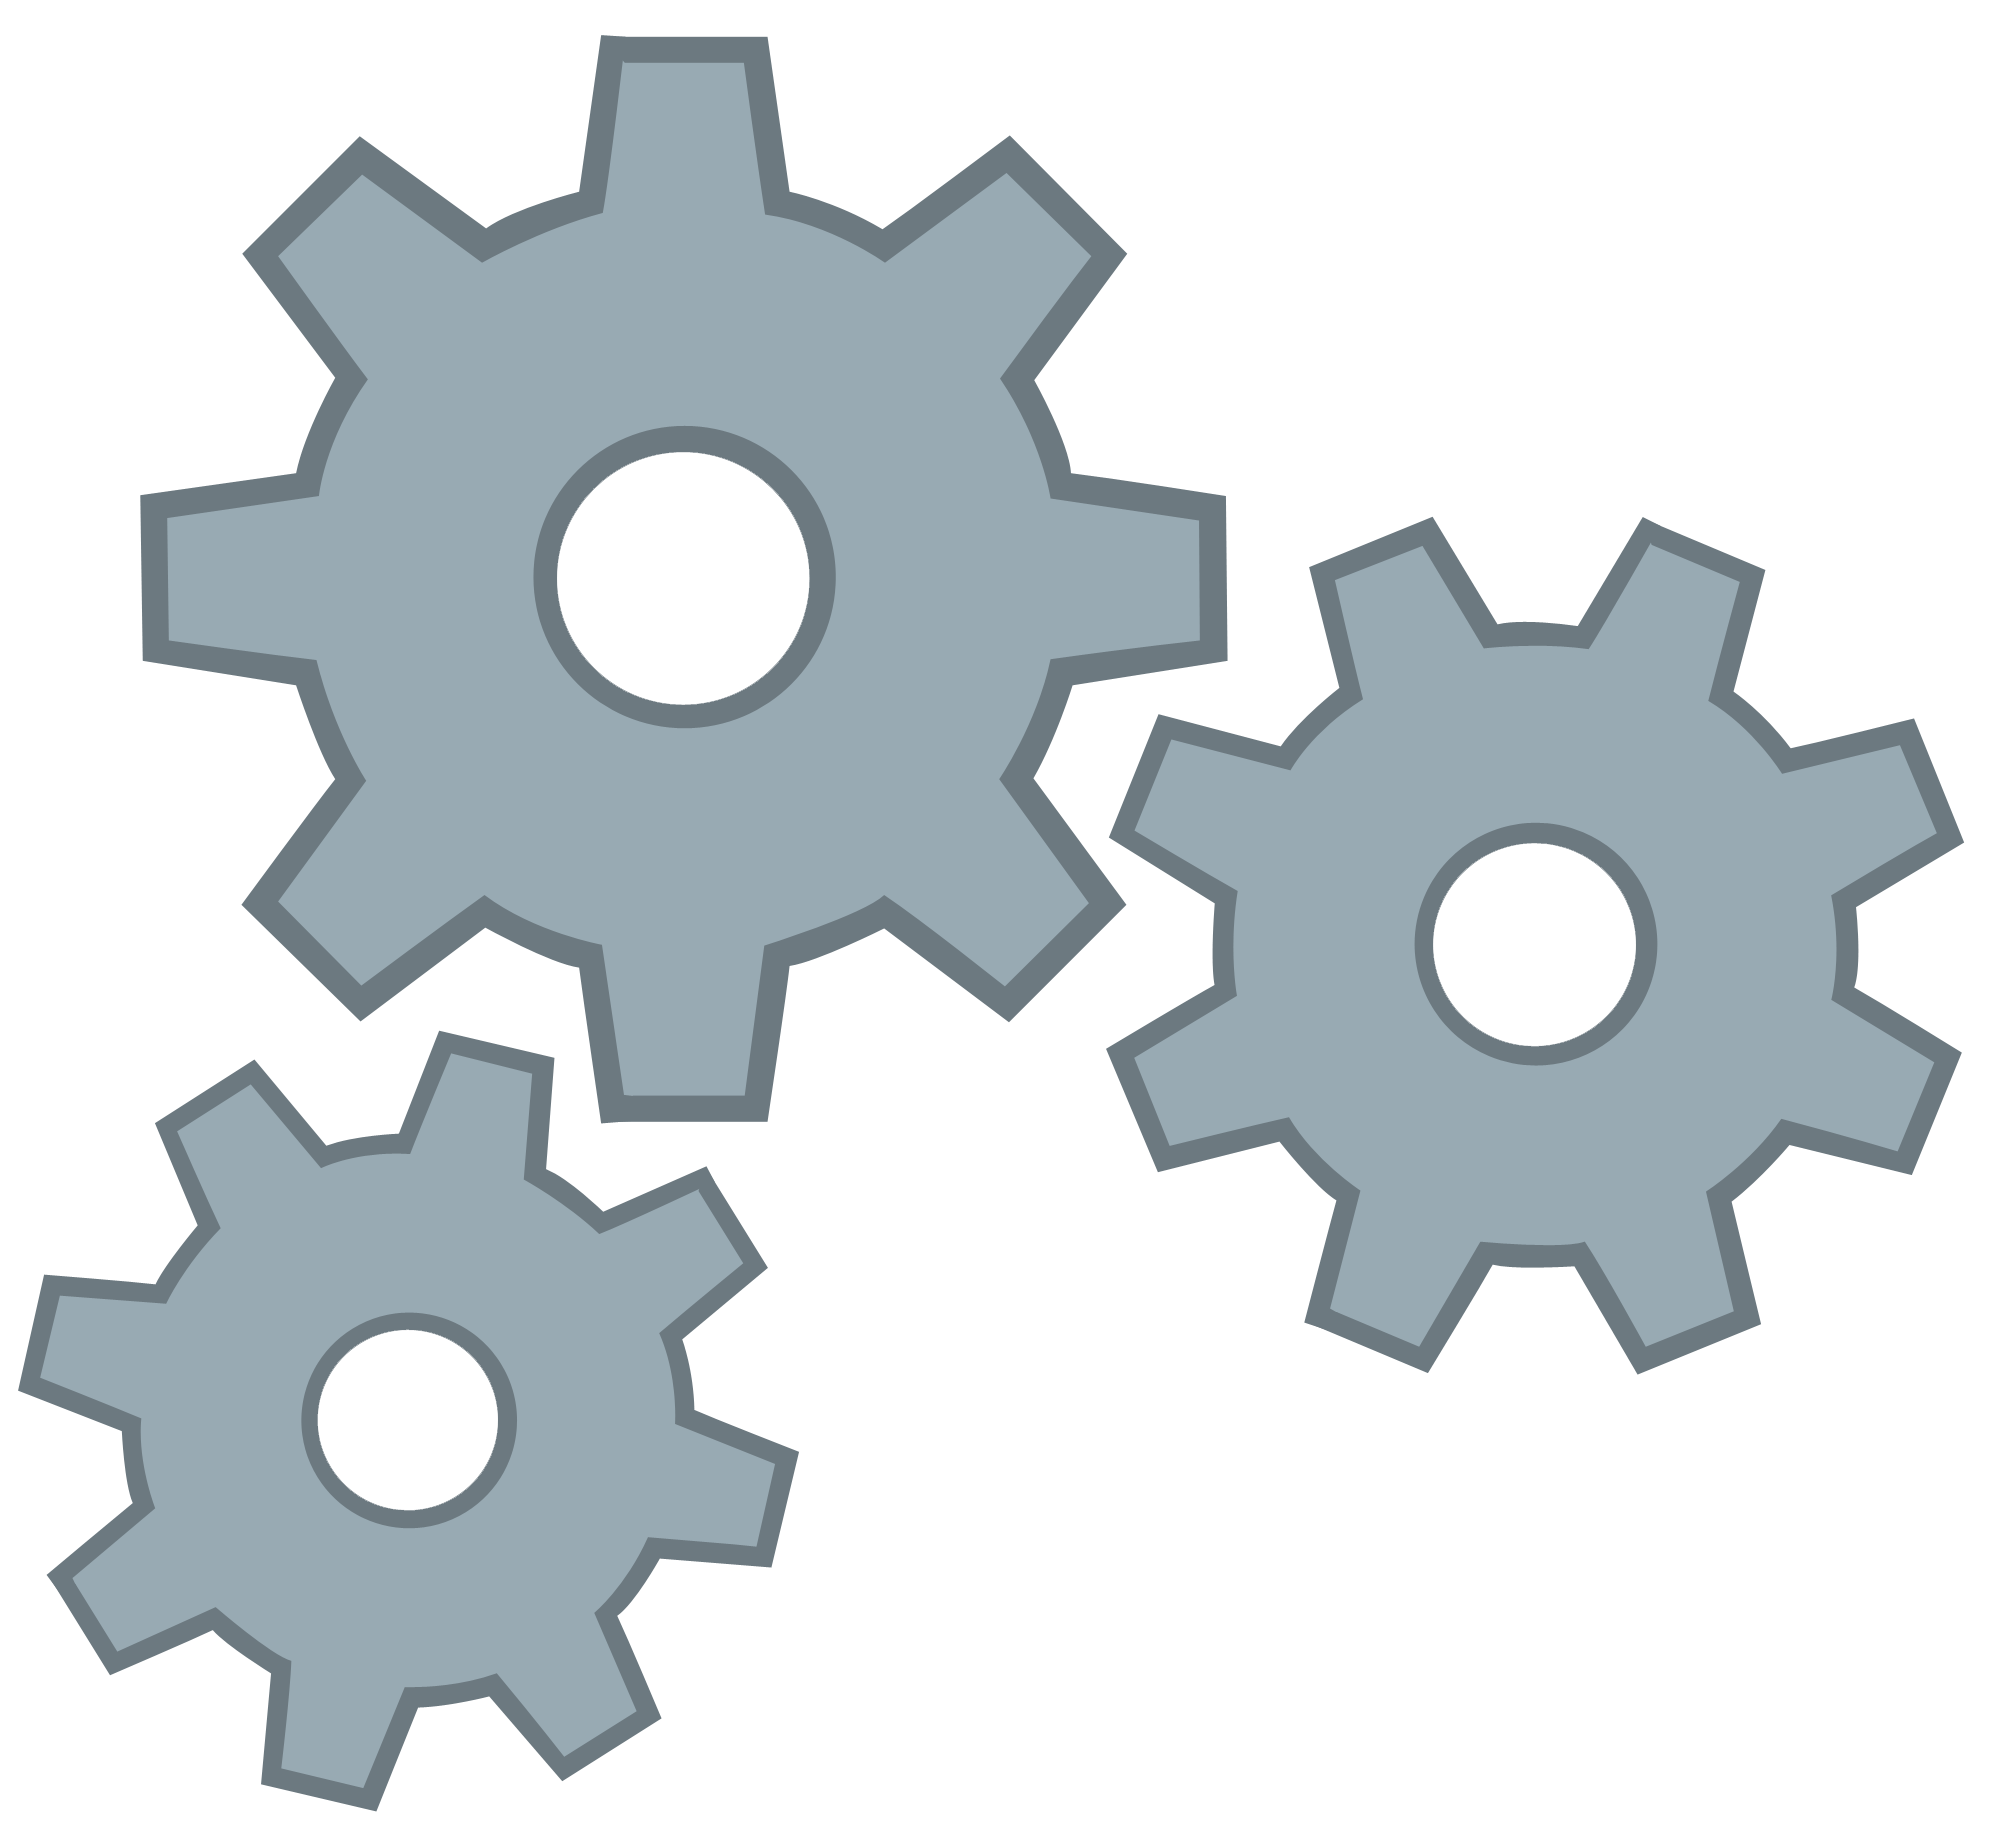 Gears clipart Gears drawings Download Download clipart